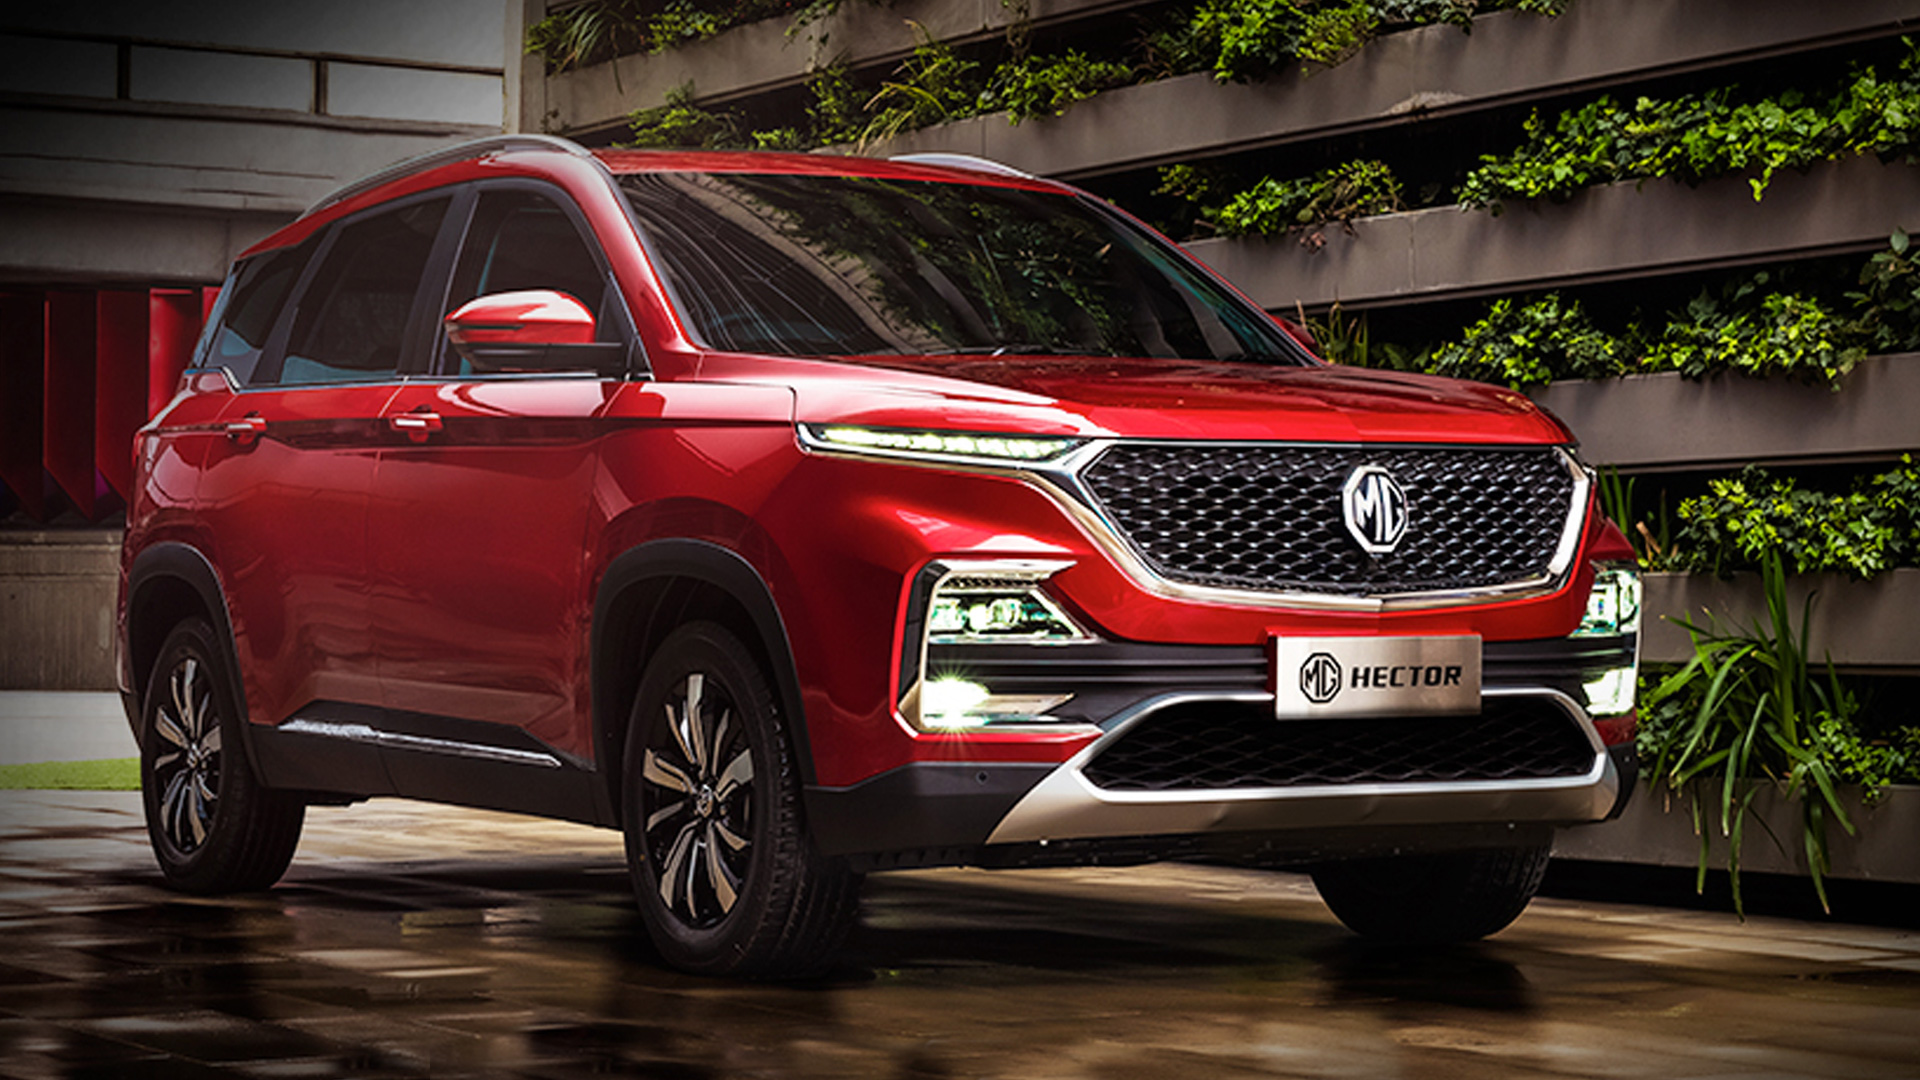 MG Hector 2019 1.5 Style Petrol